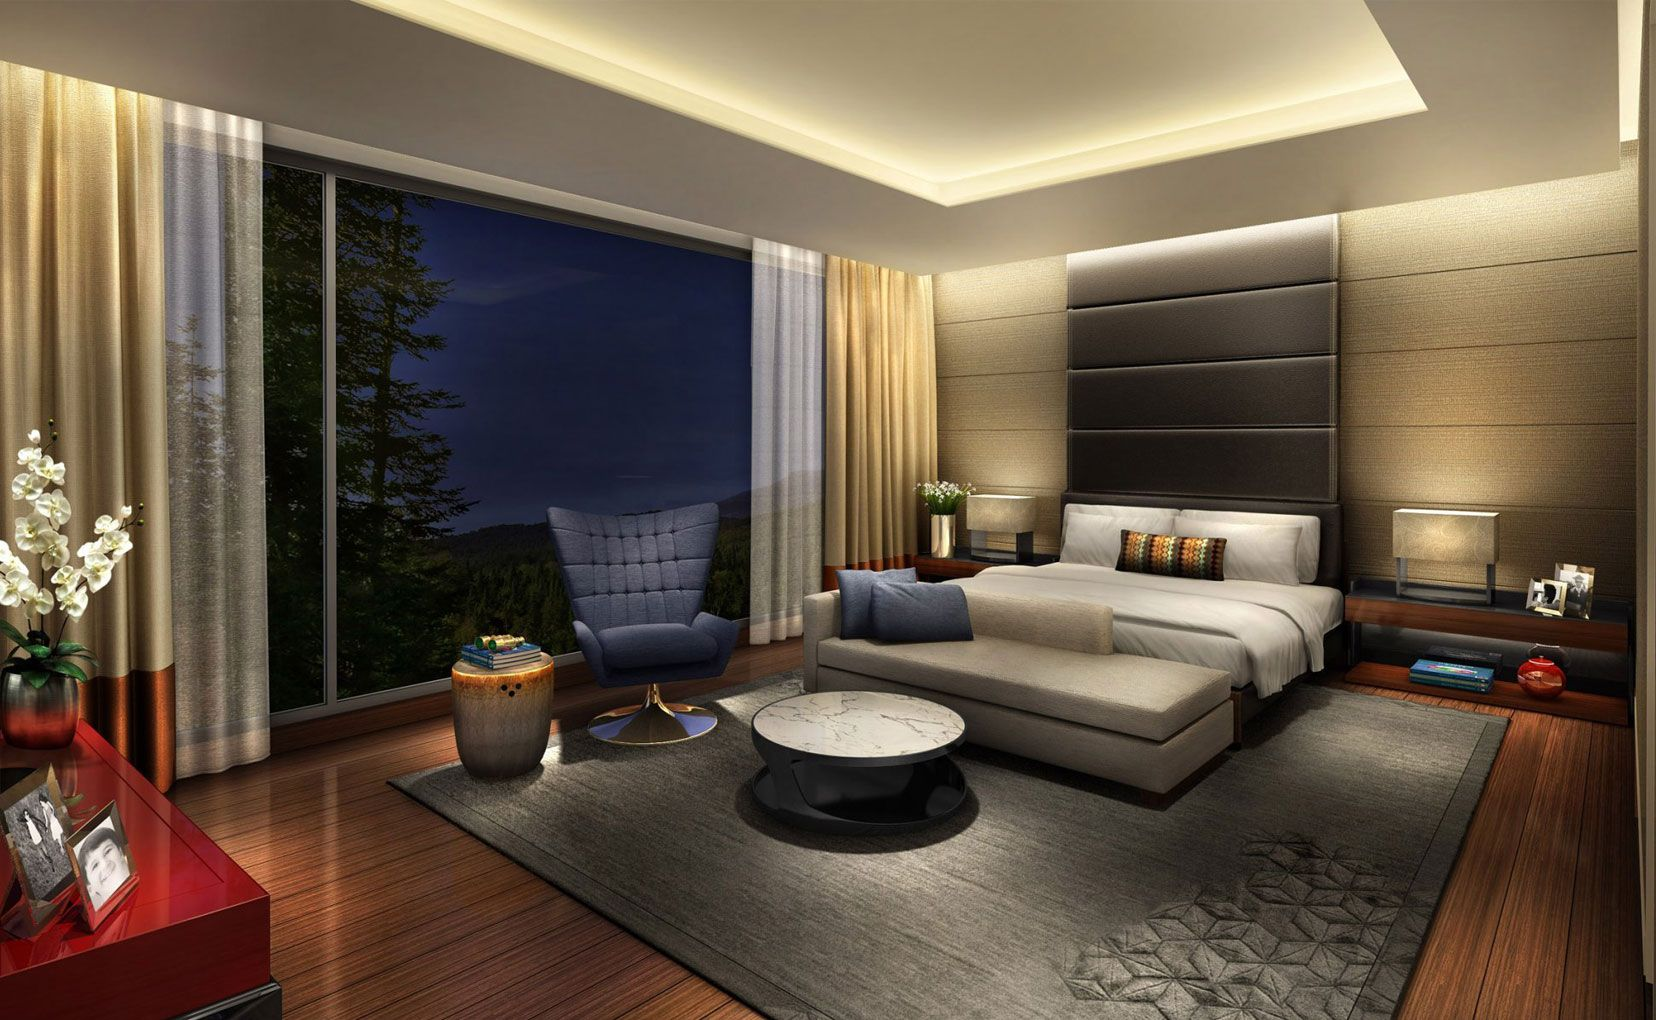 Chic Interior Design Residential Residential Show Villa Experion Interior Design For Residential House